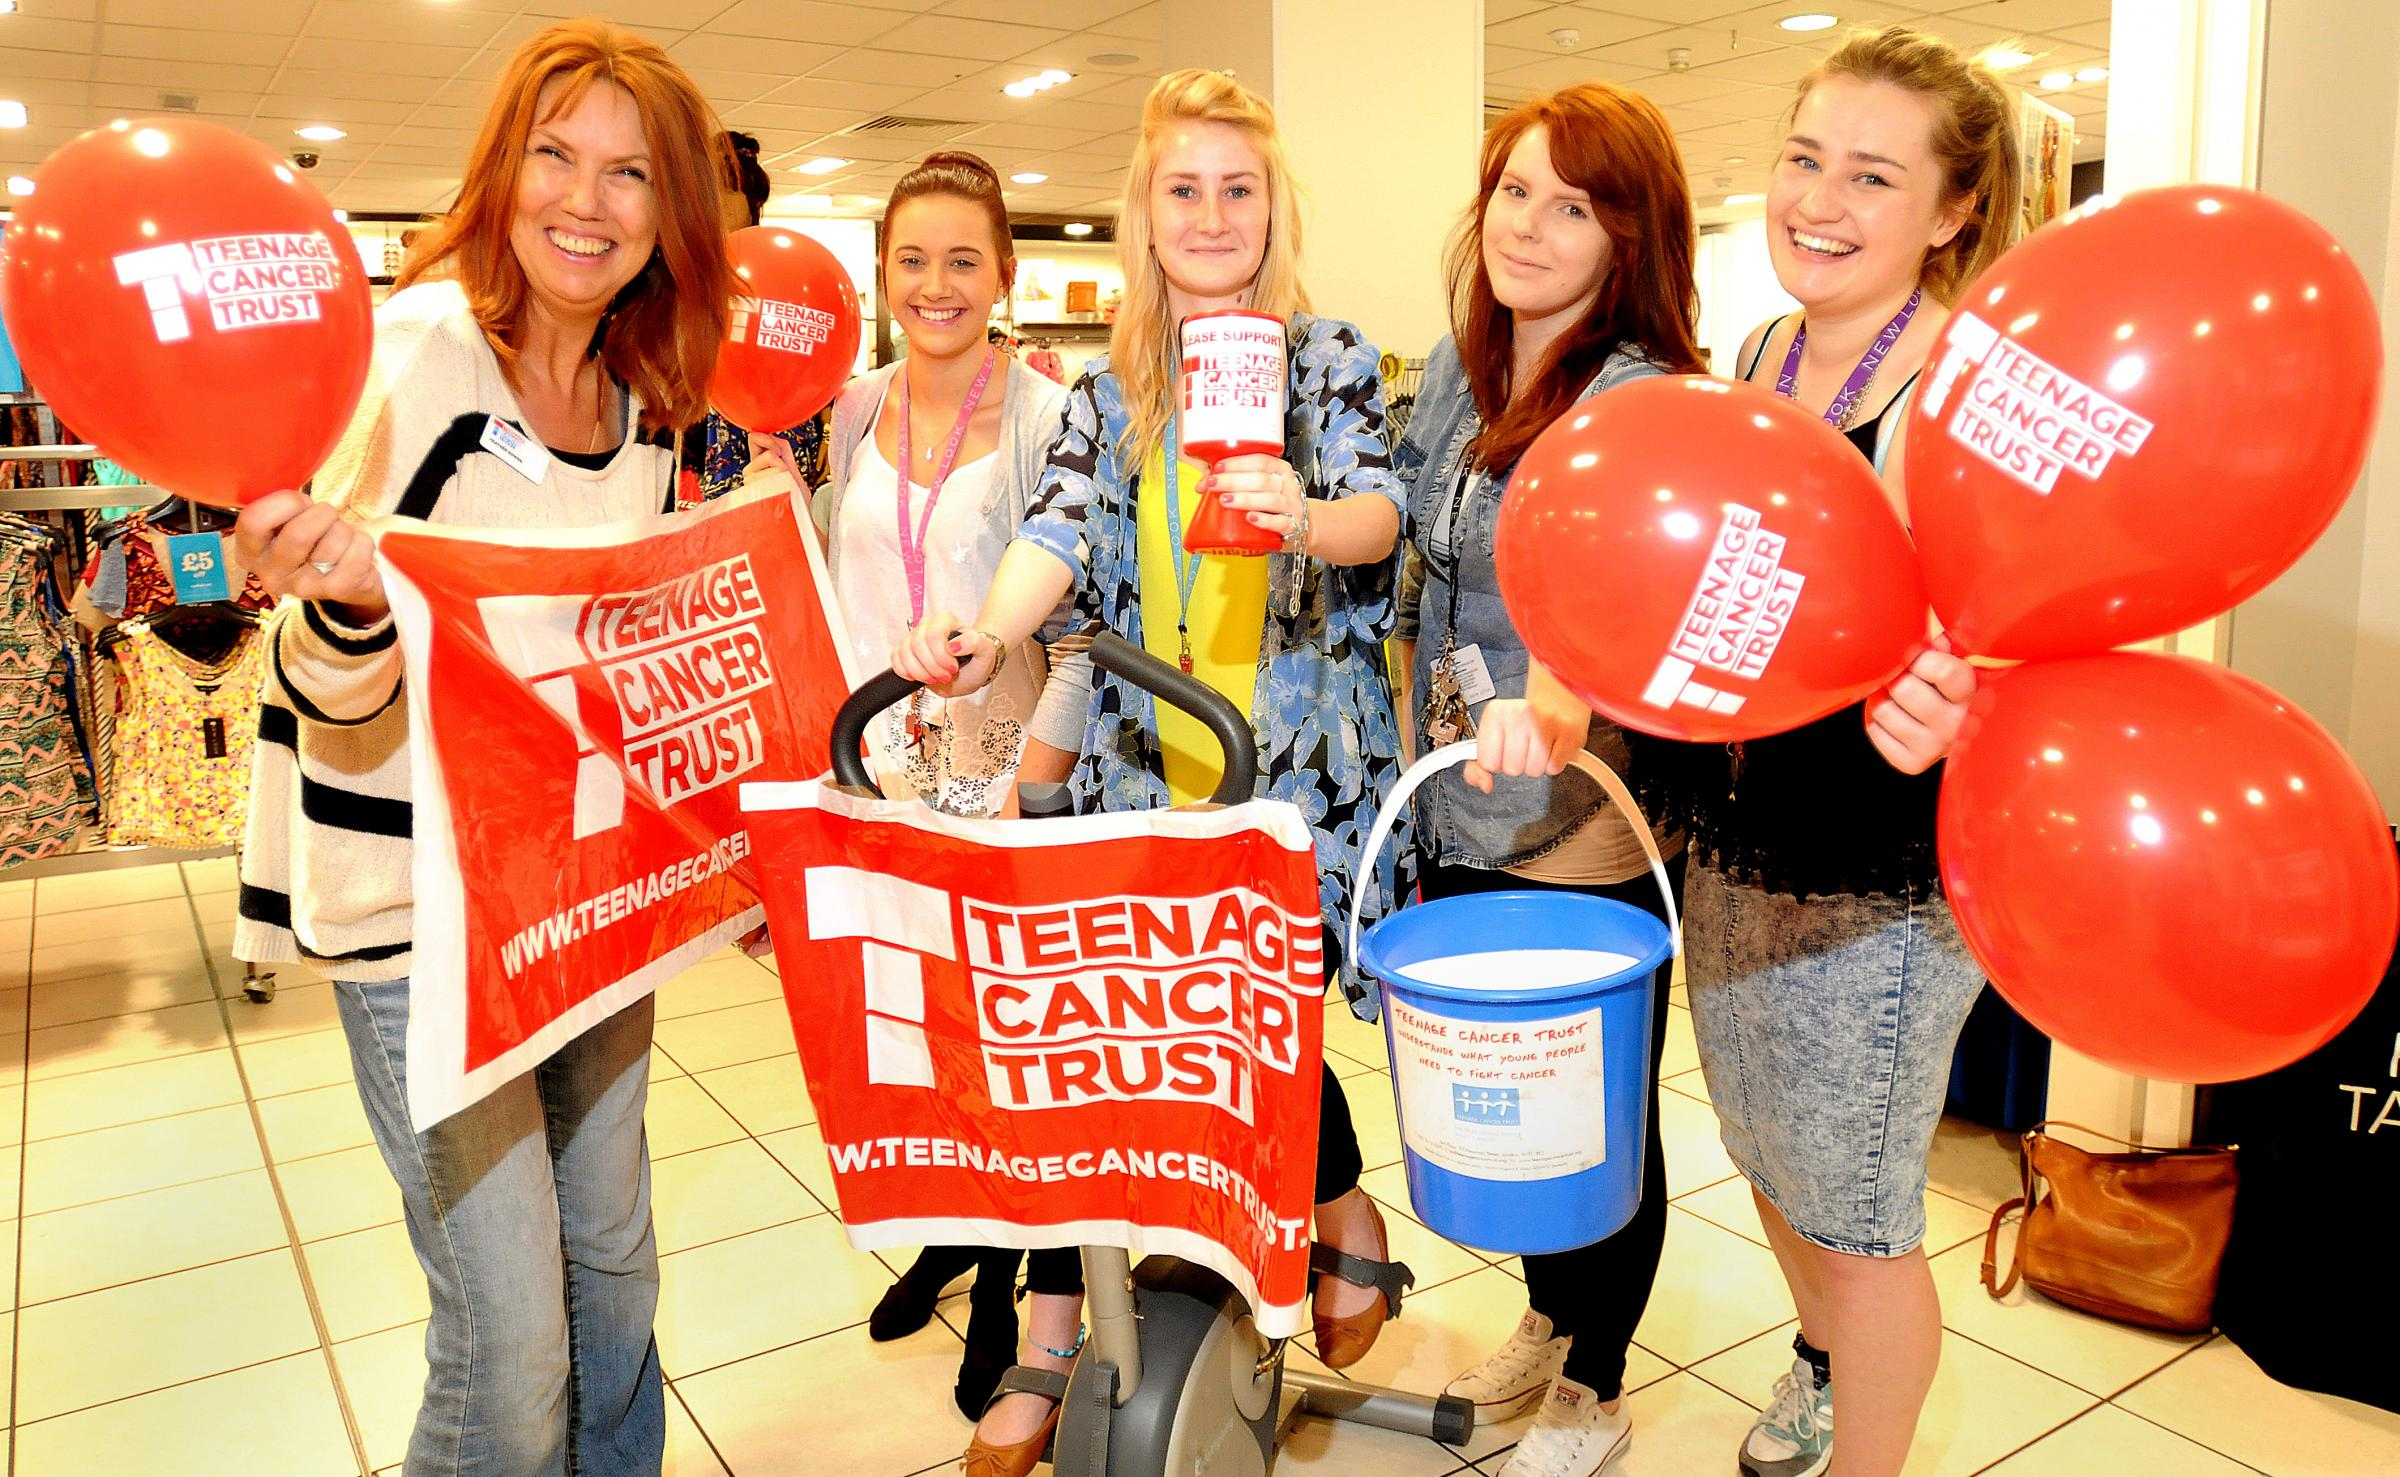 At the Teenage Cancer Trust's Spinathon in the New Look shop in Parliament Street were (from left) Heather Bowen, Regional Manager for the Teenage Cancer Trust Yorkshire with New Look staff Charlotte Craven, Rosie Tanner, Jess Holmes and Marcy Burke.